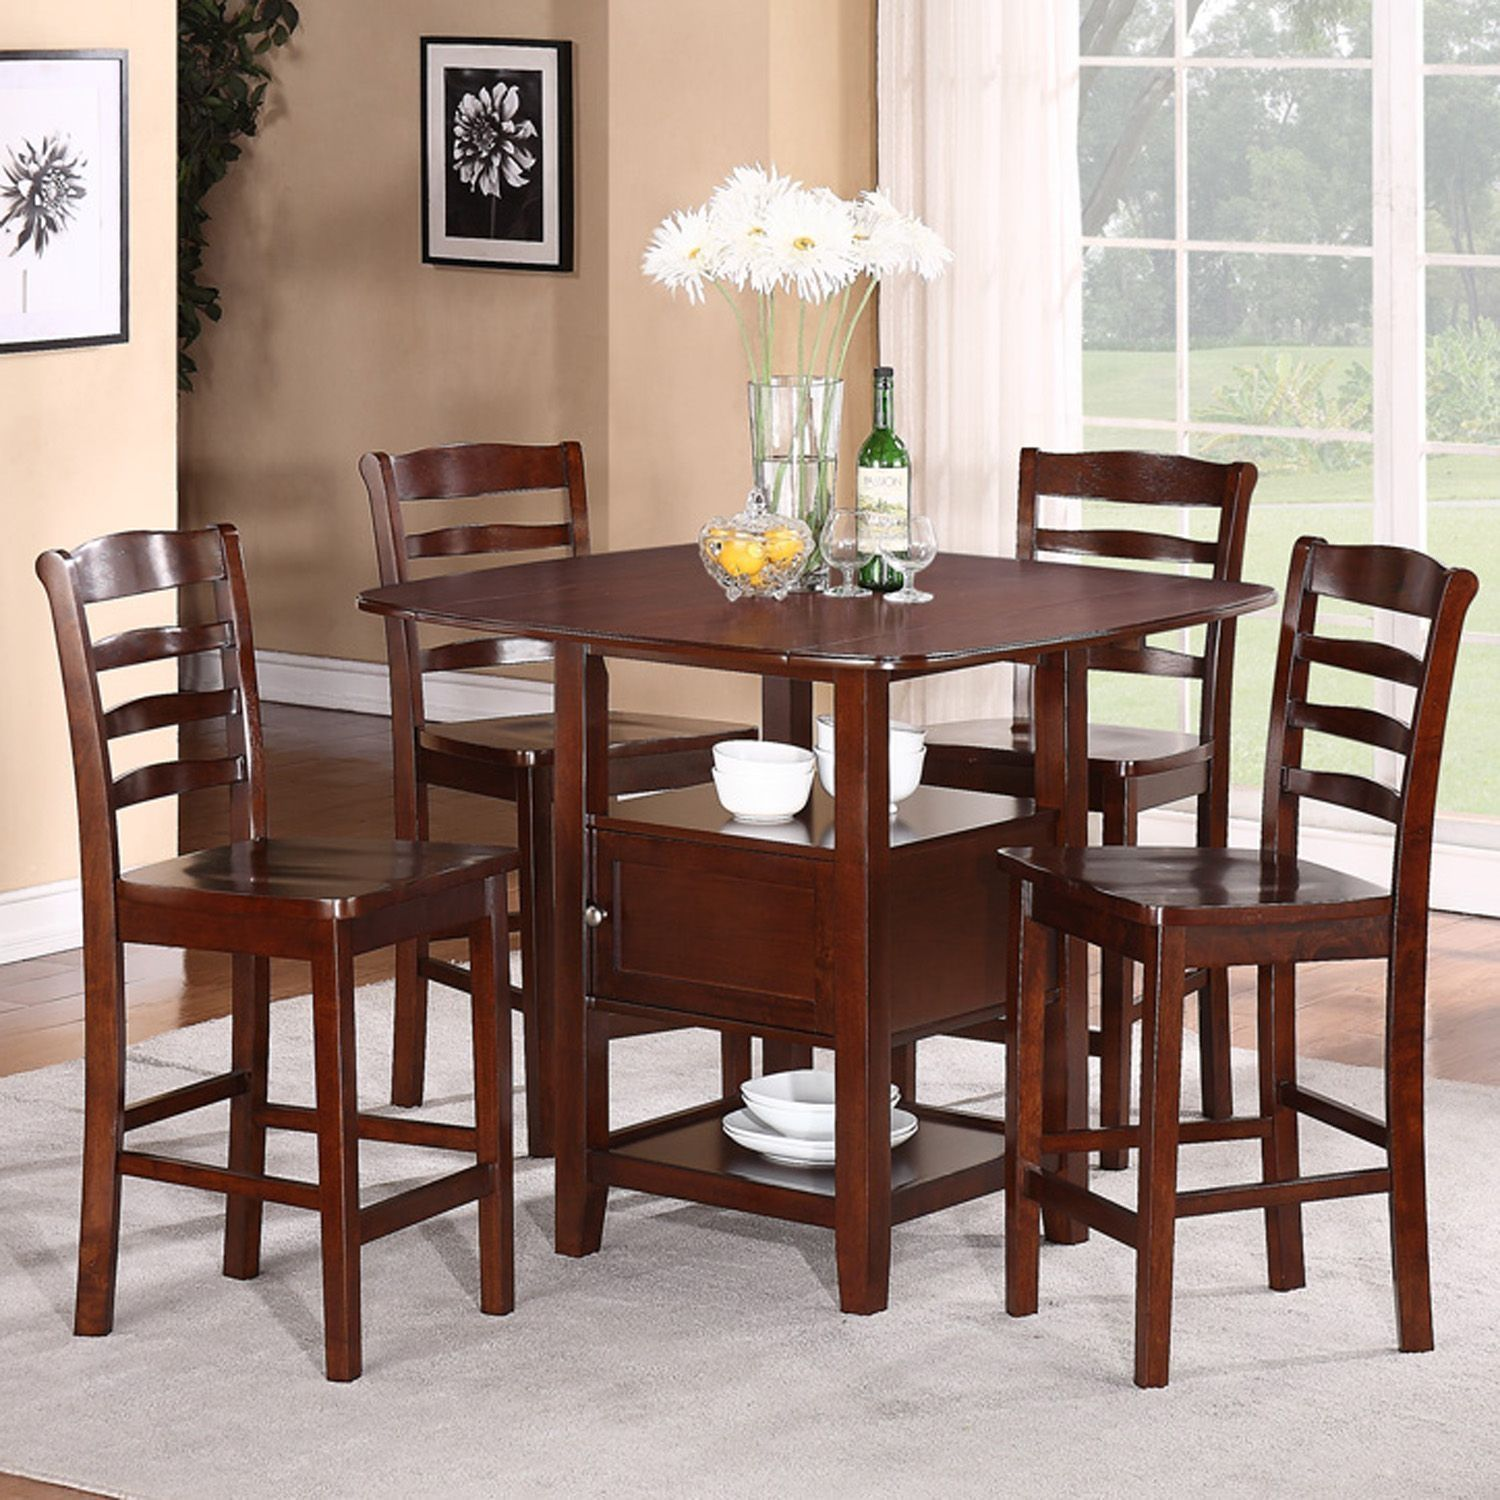 Sears Furniture Dining Room Tables fmufpi Pinterest